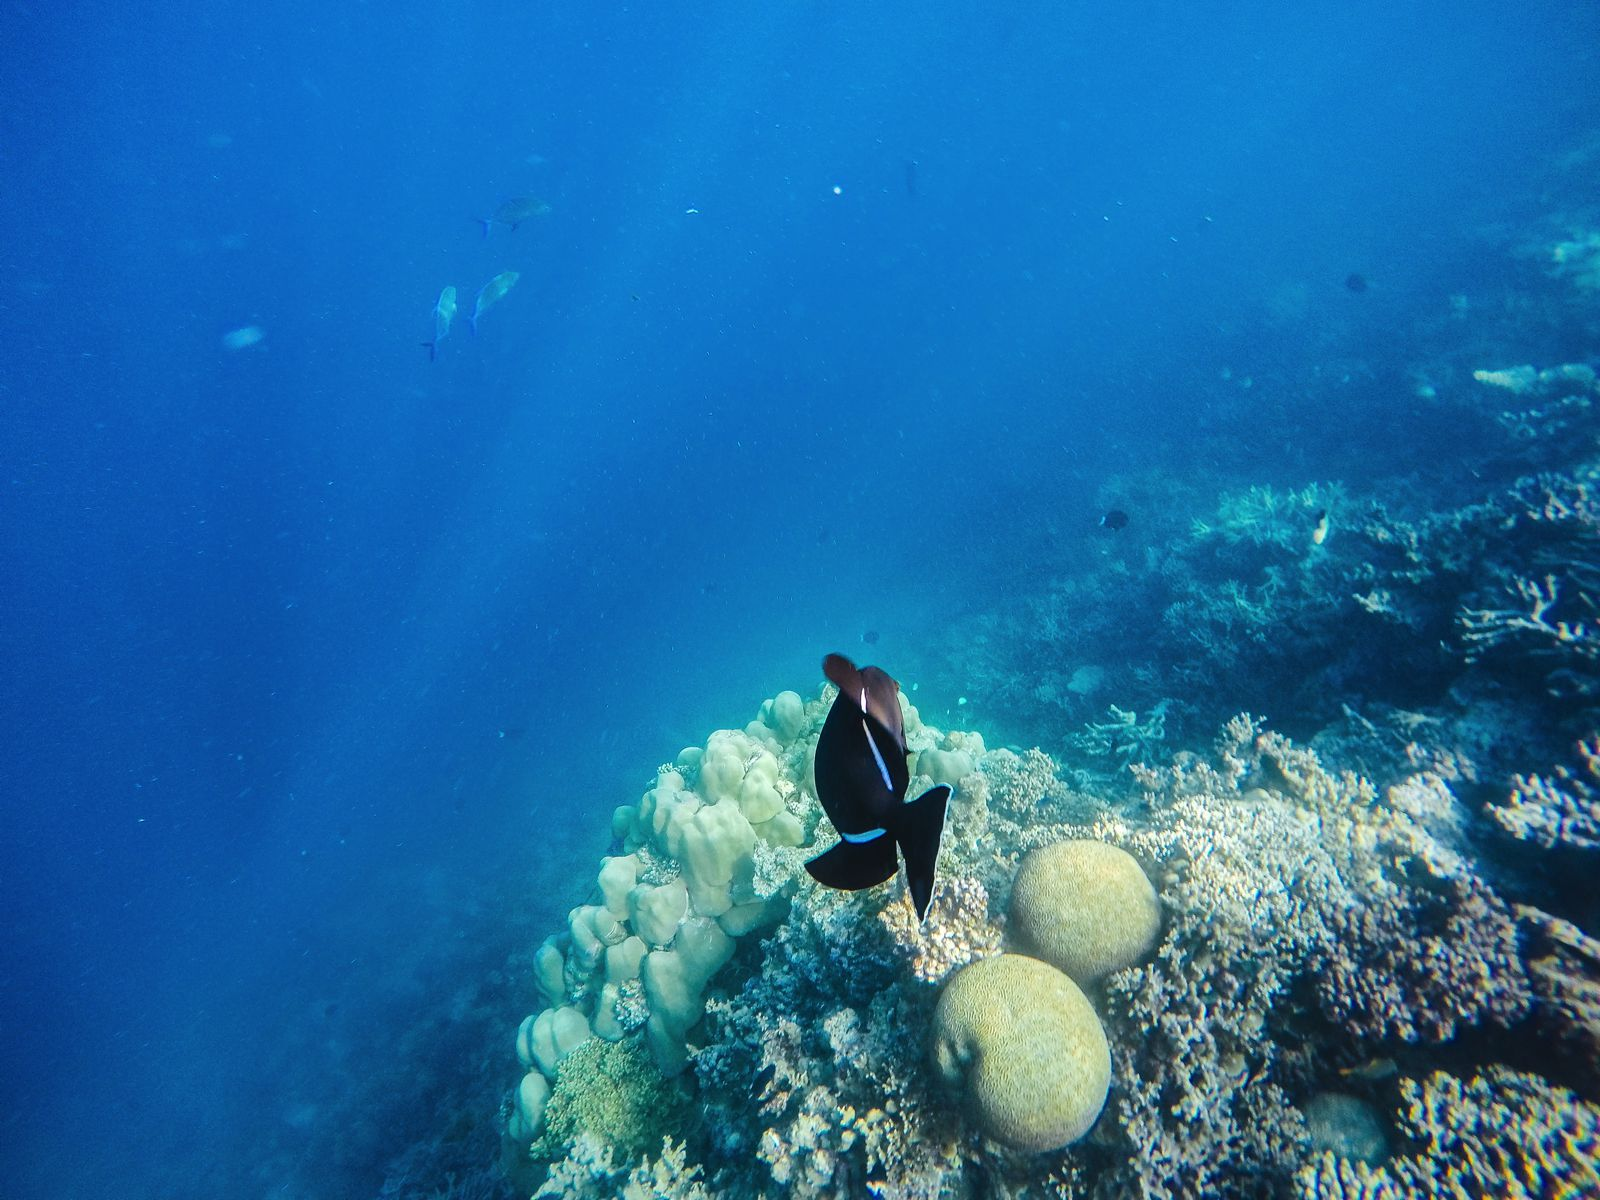 Swimming With Sharks, Turtles, Clownfish And Stingrays In The Maldives (31)